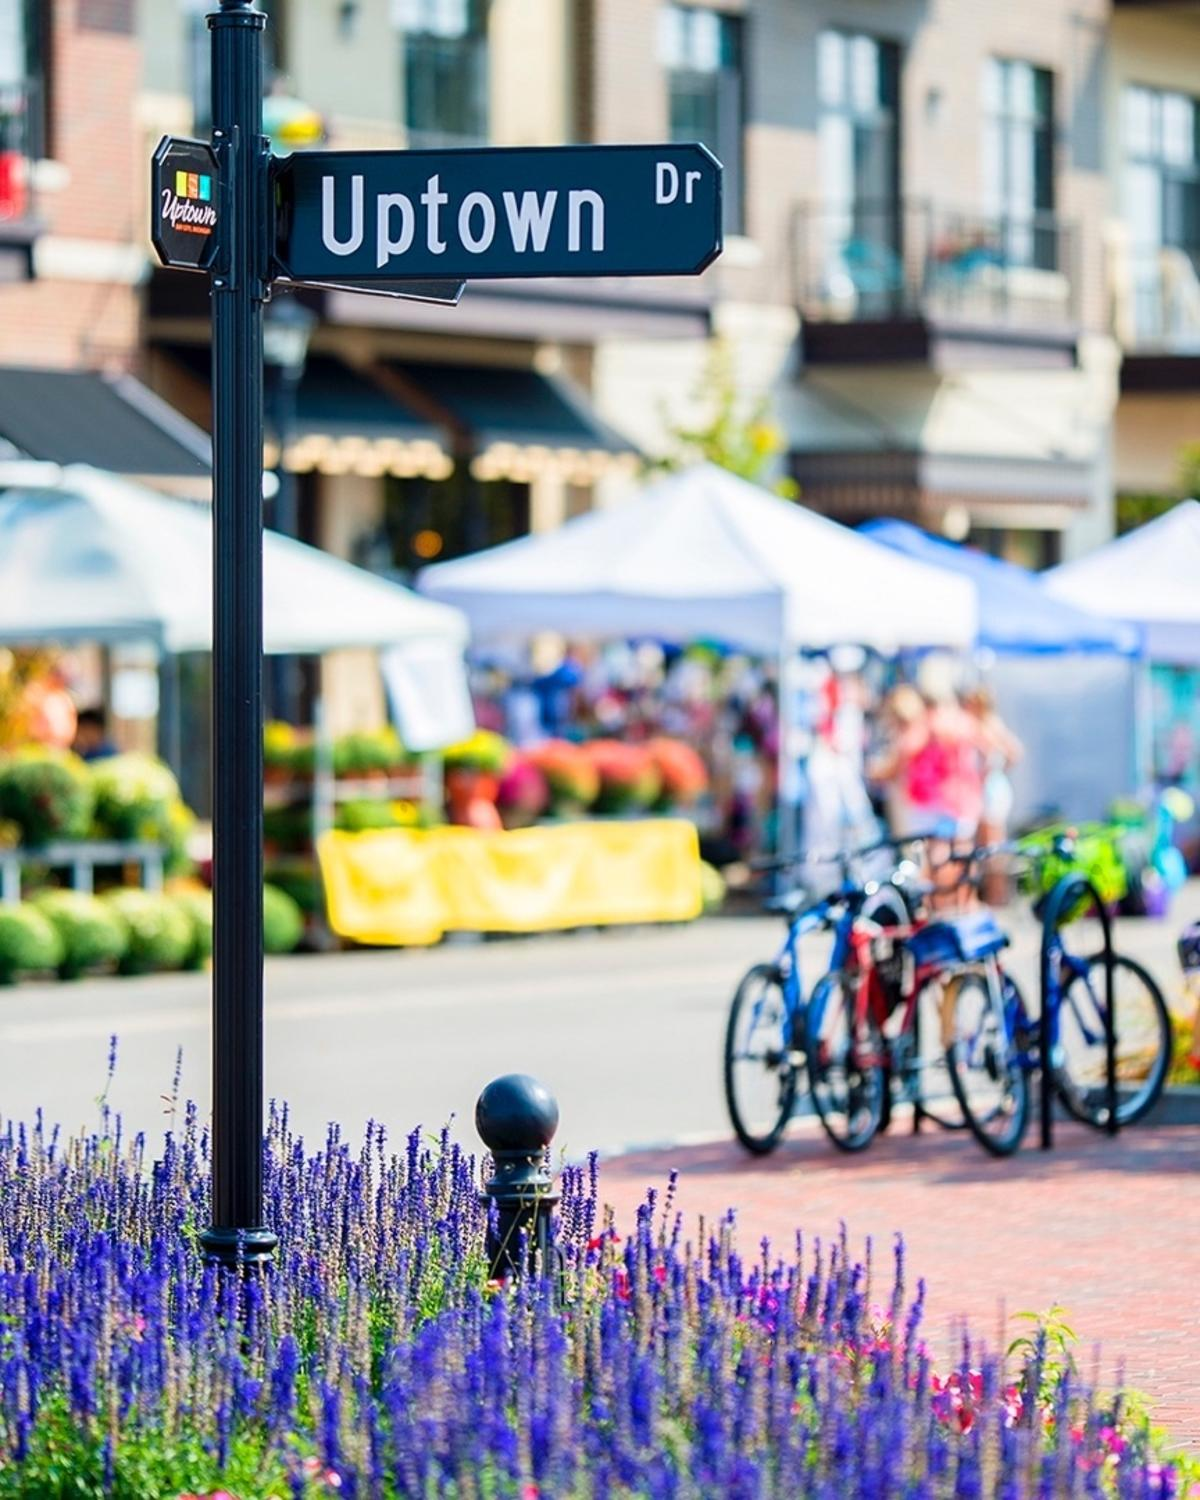 Tents set up by beautiful street plantings on Uptown Drive for The Great Lakes Market in Uptown Bay City